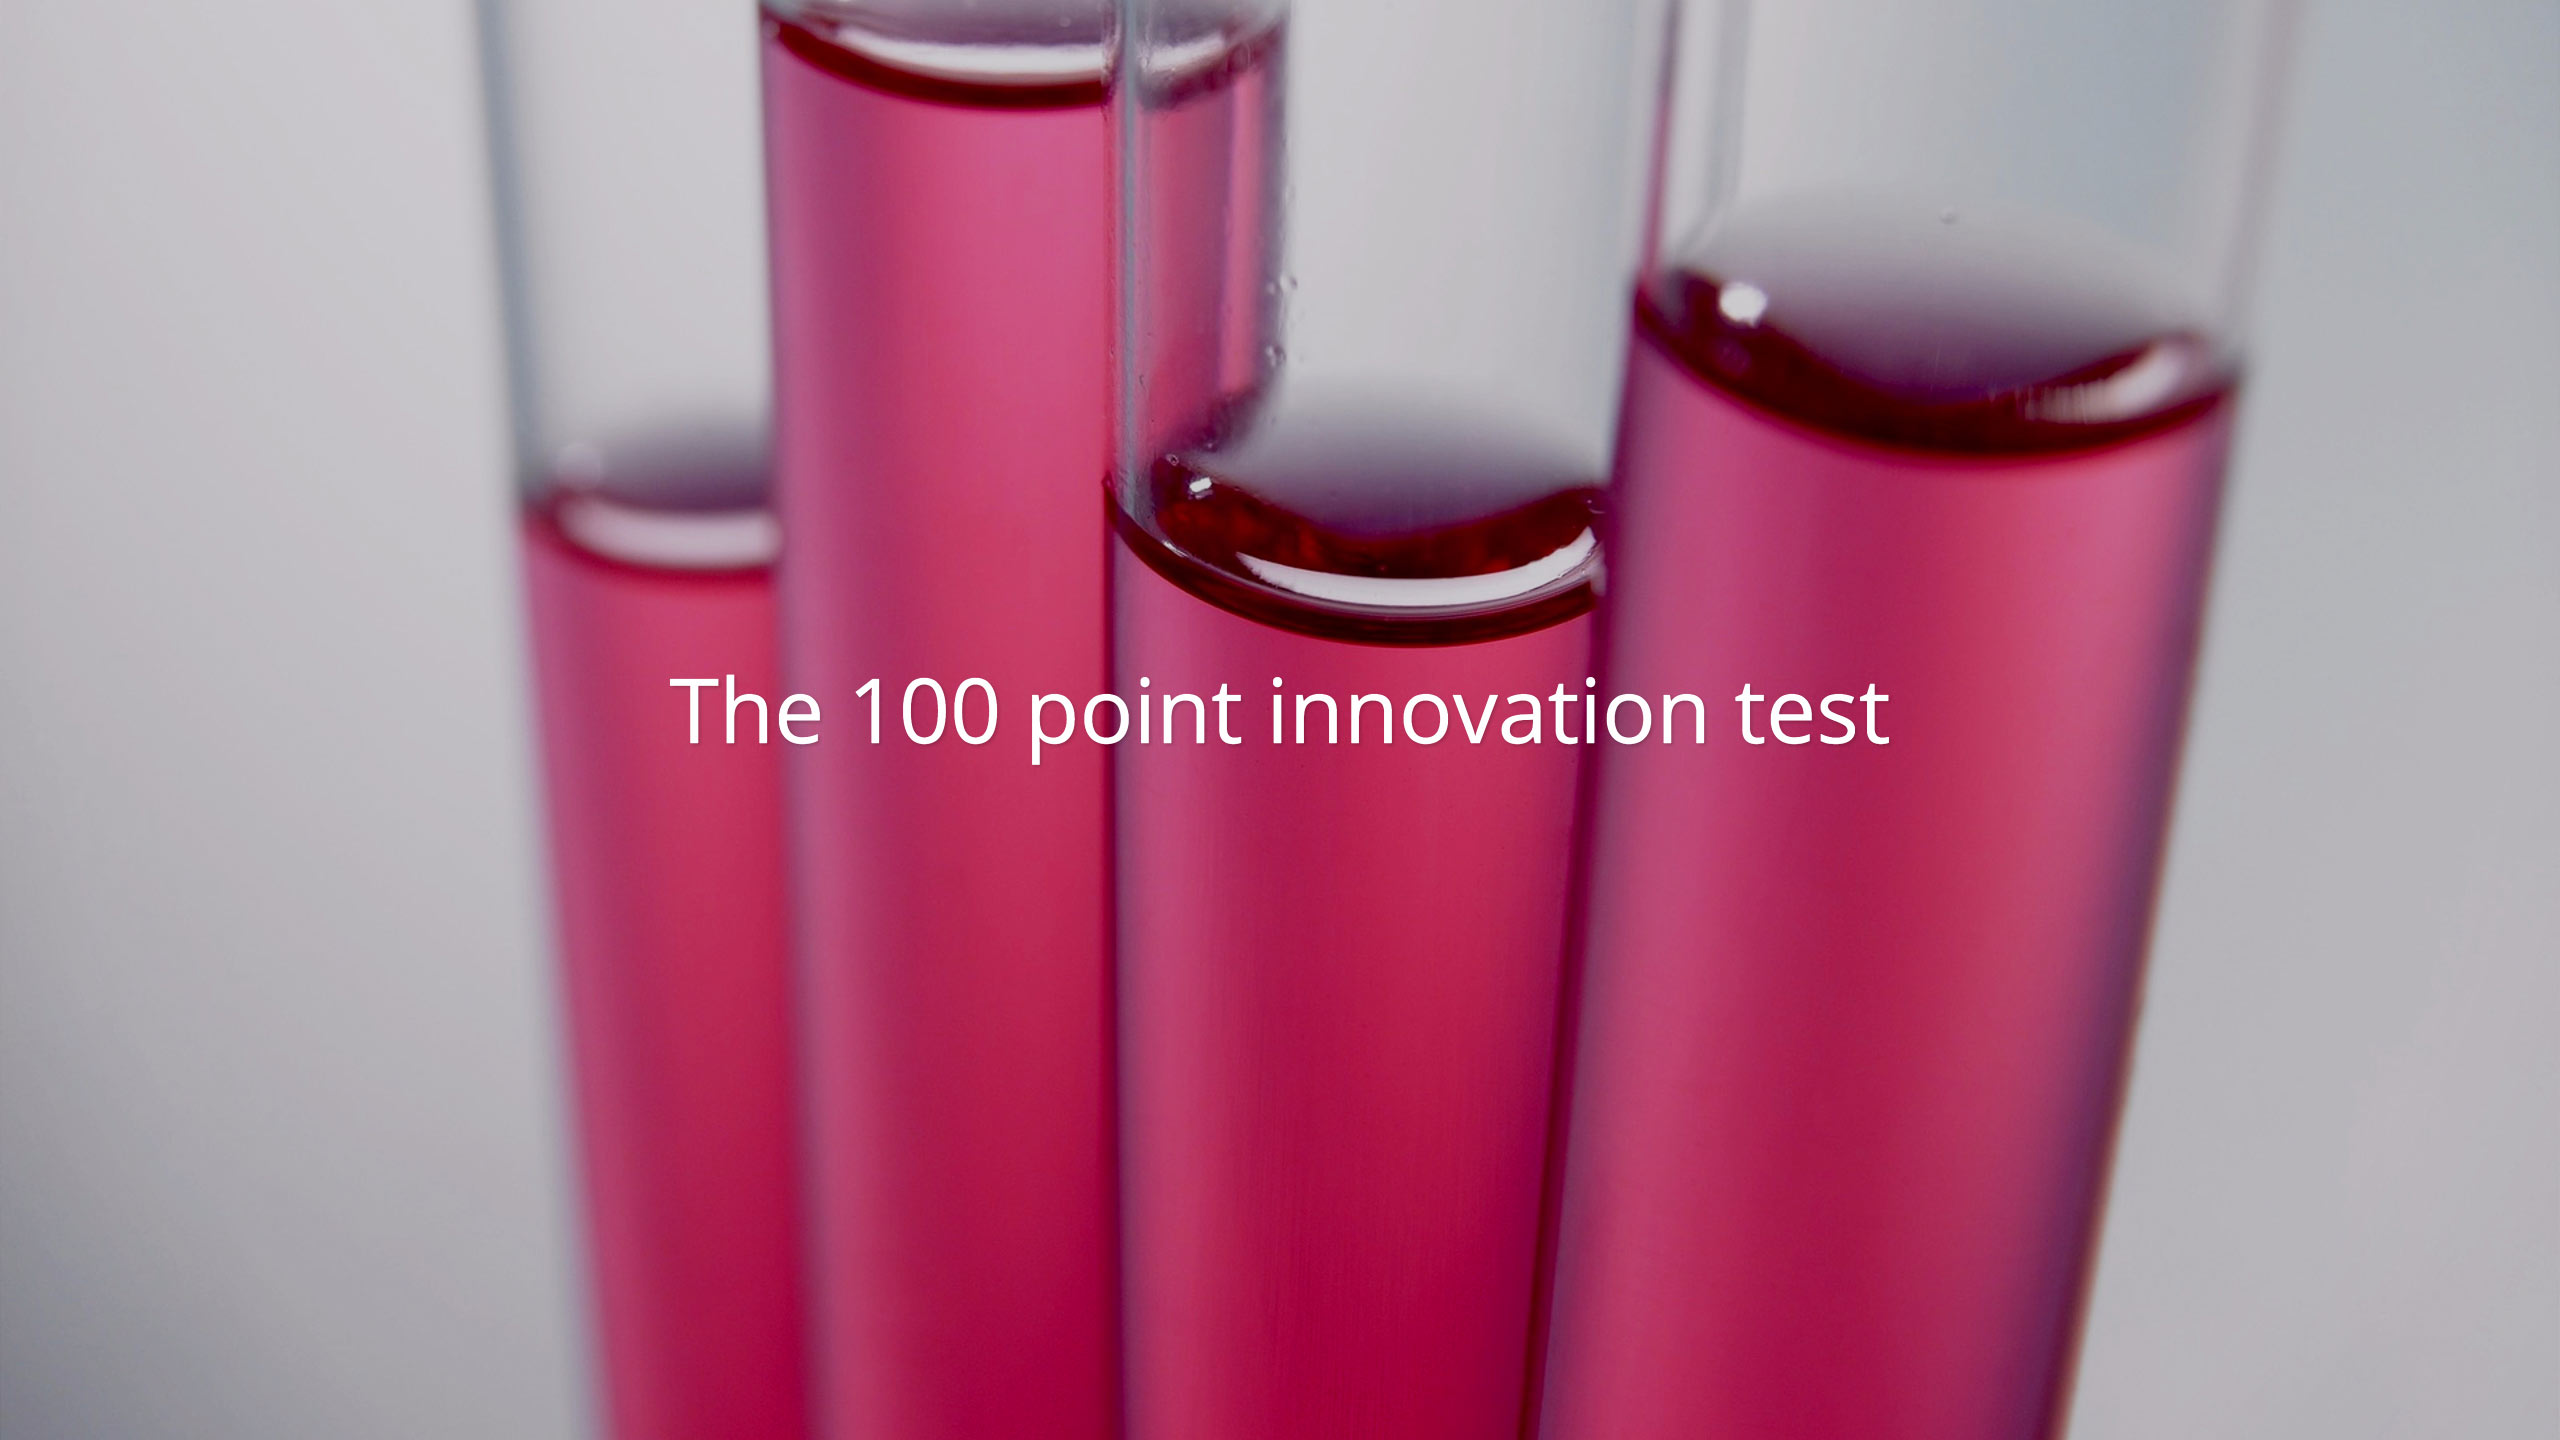 The 100 point innovation test requirements